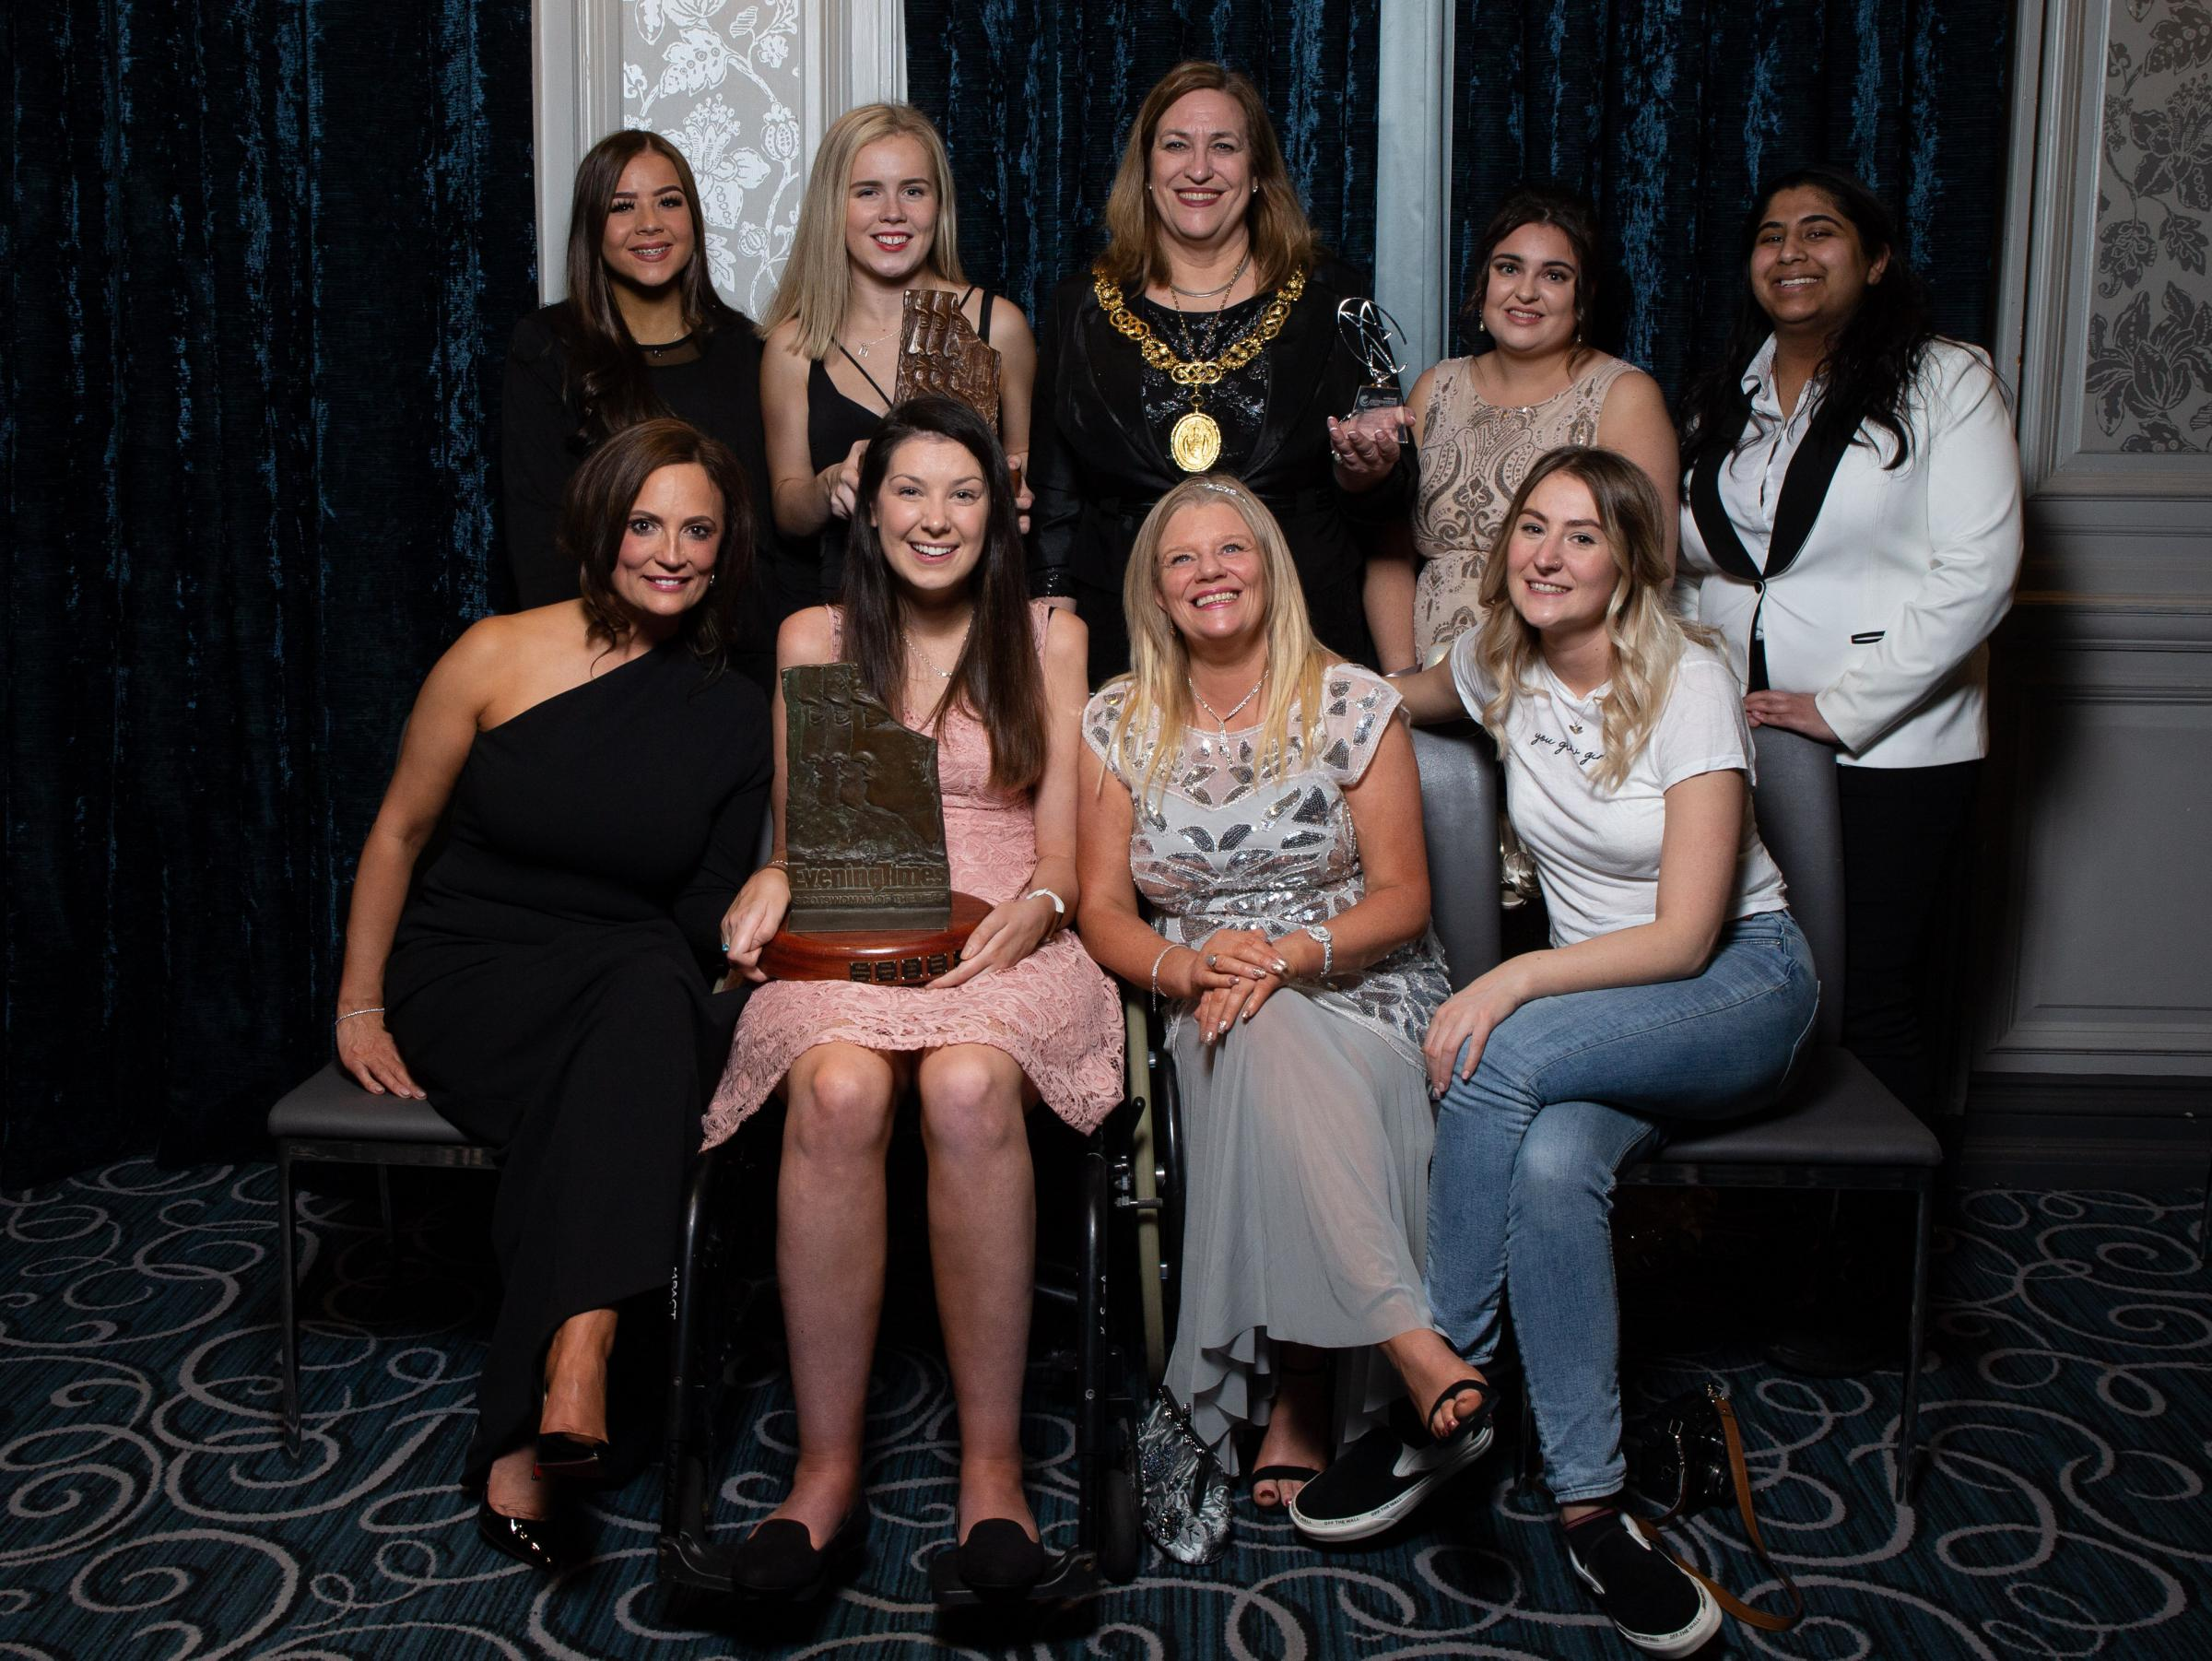 GLASGOW, SCOTLAND - MARCH 14: Lucy Lintott wins the 2019 Scotswoman of the Year award with Young Scotswoman of the year Maria Lyle and Provost Eva Bolander accepting Editors Choice award for the Woman's Equal Pay Campaign withe the rest of our finalis